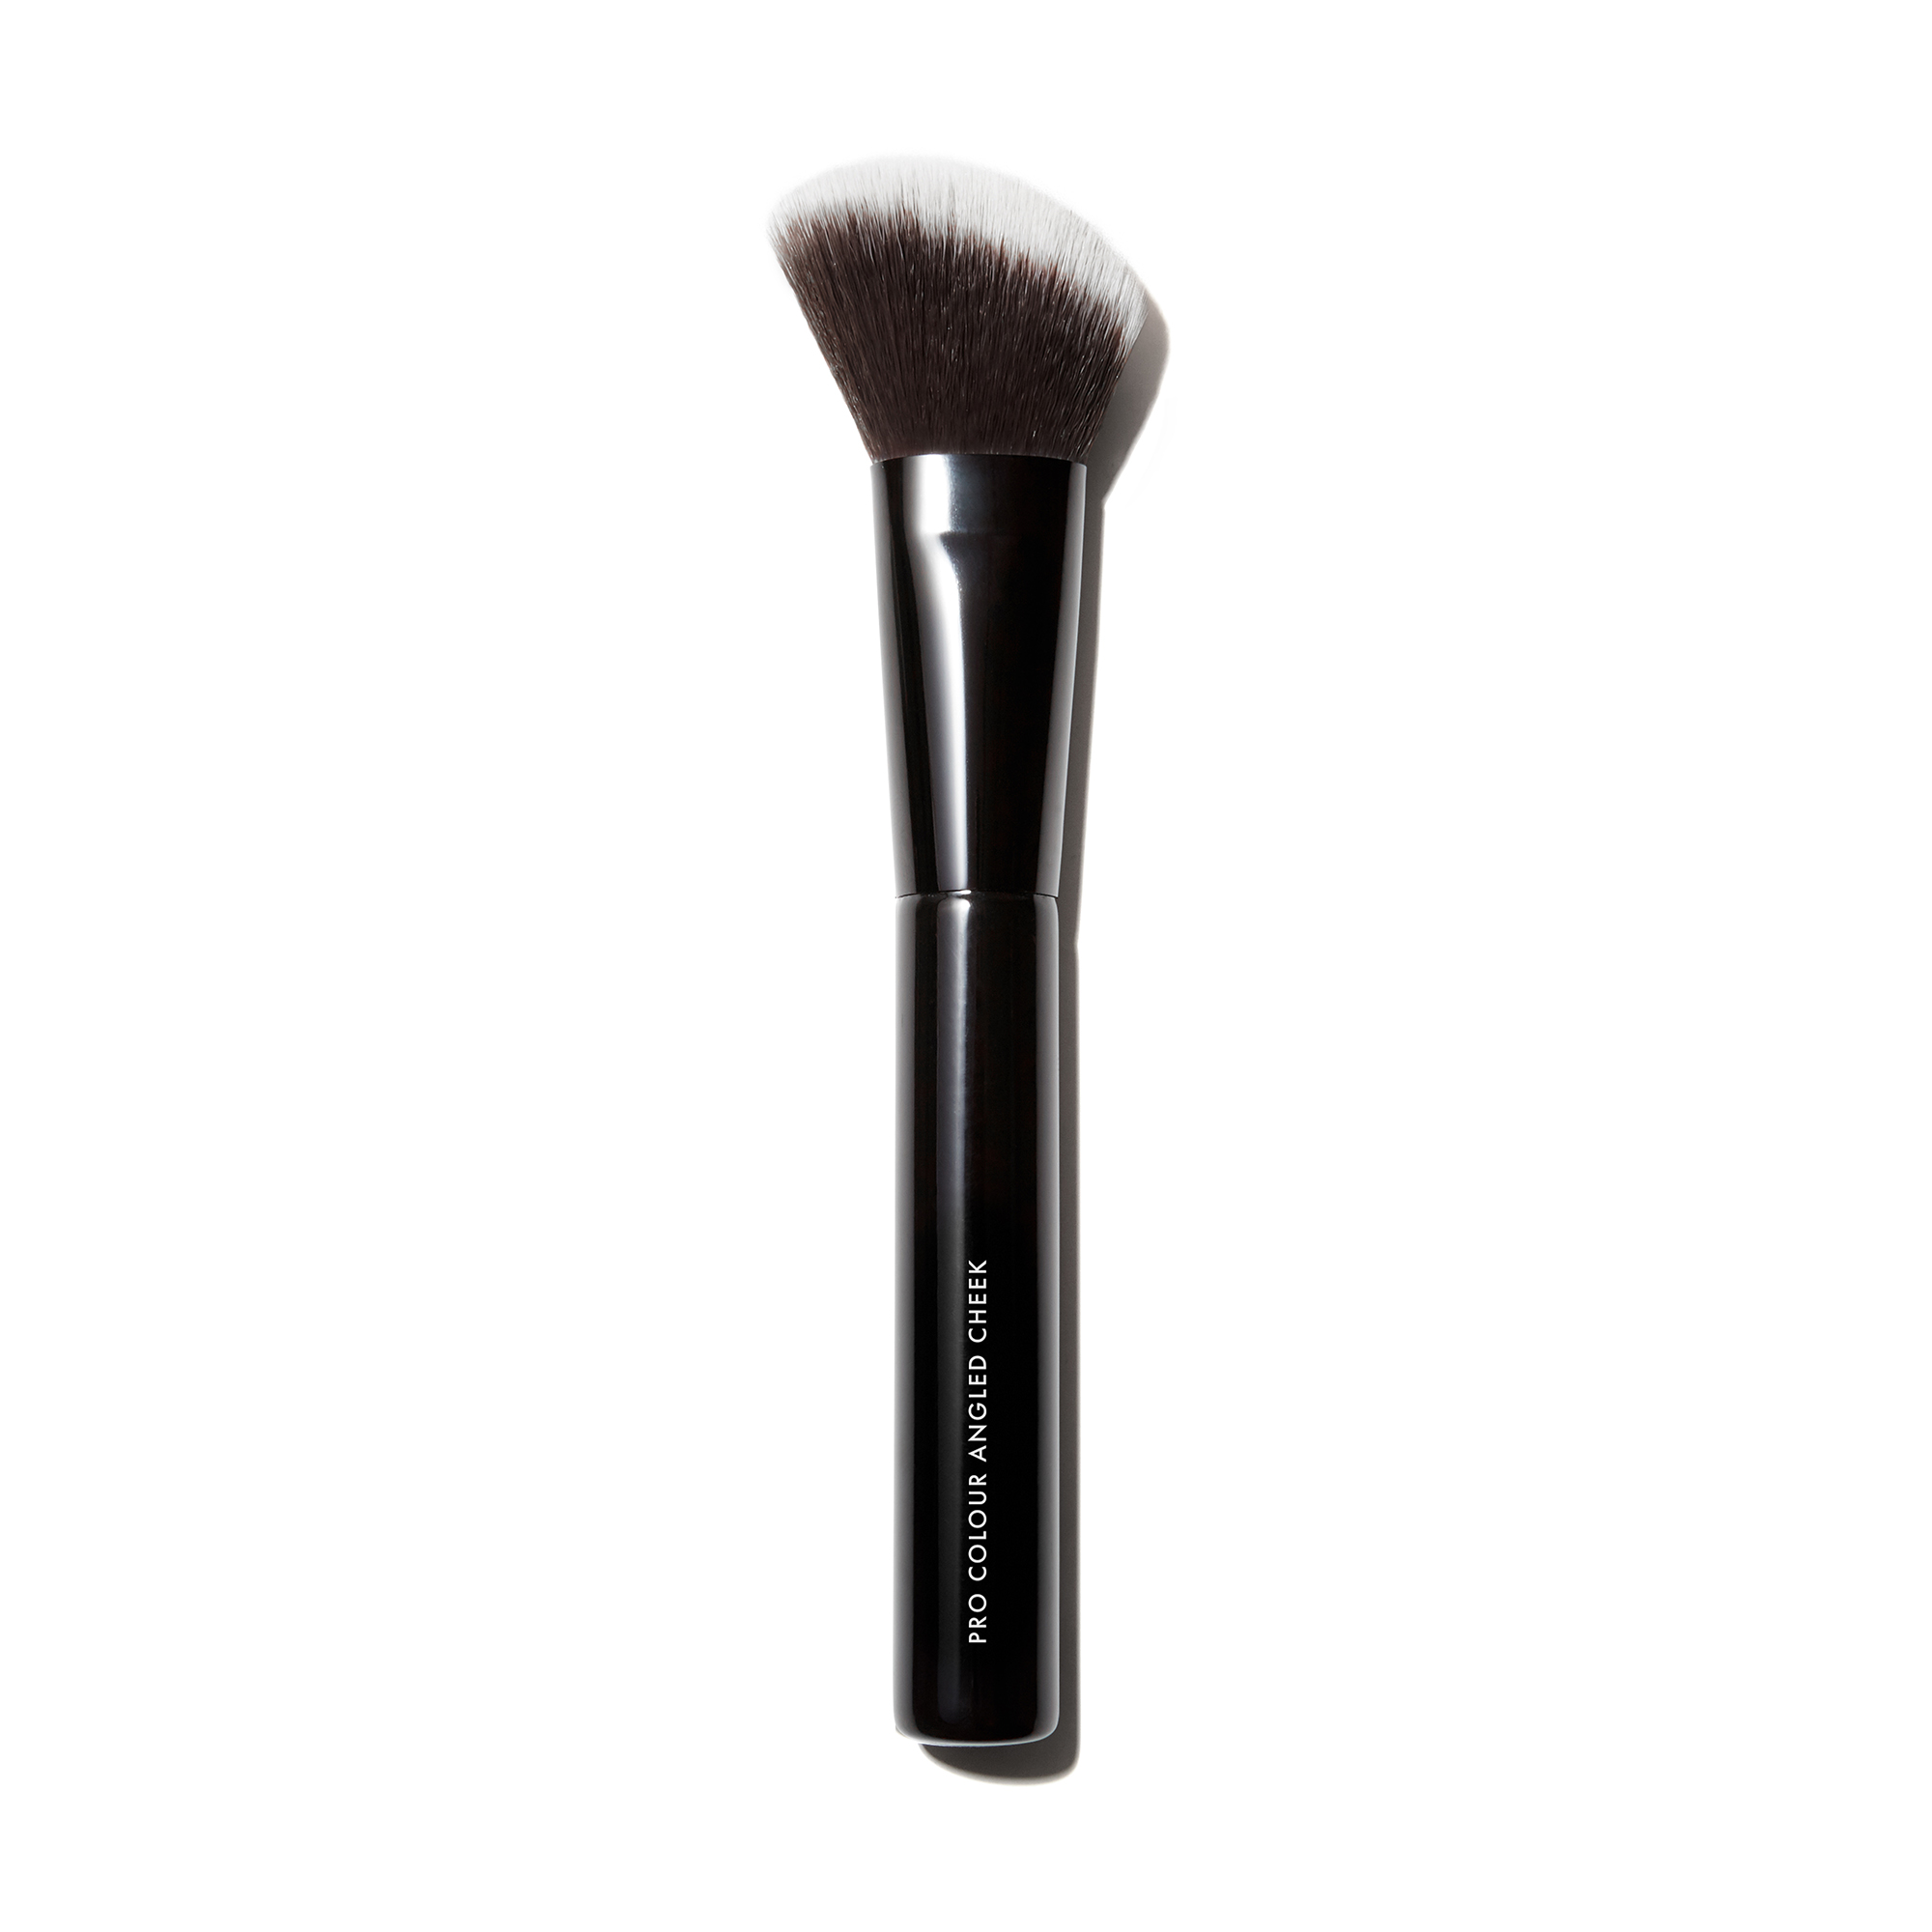 Pro Colour Angled Cheek Brush by Beauty Pie